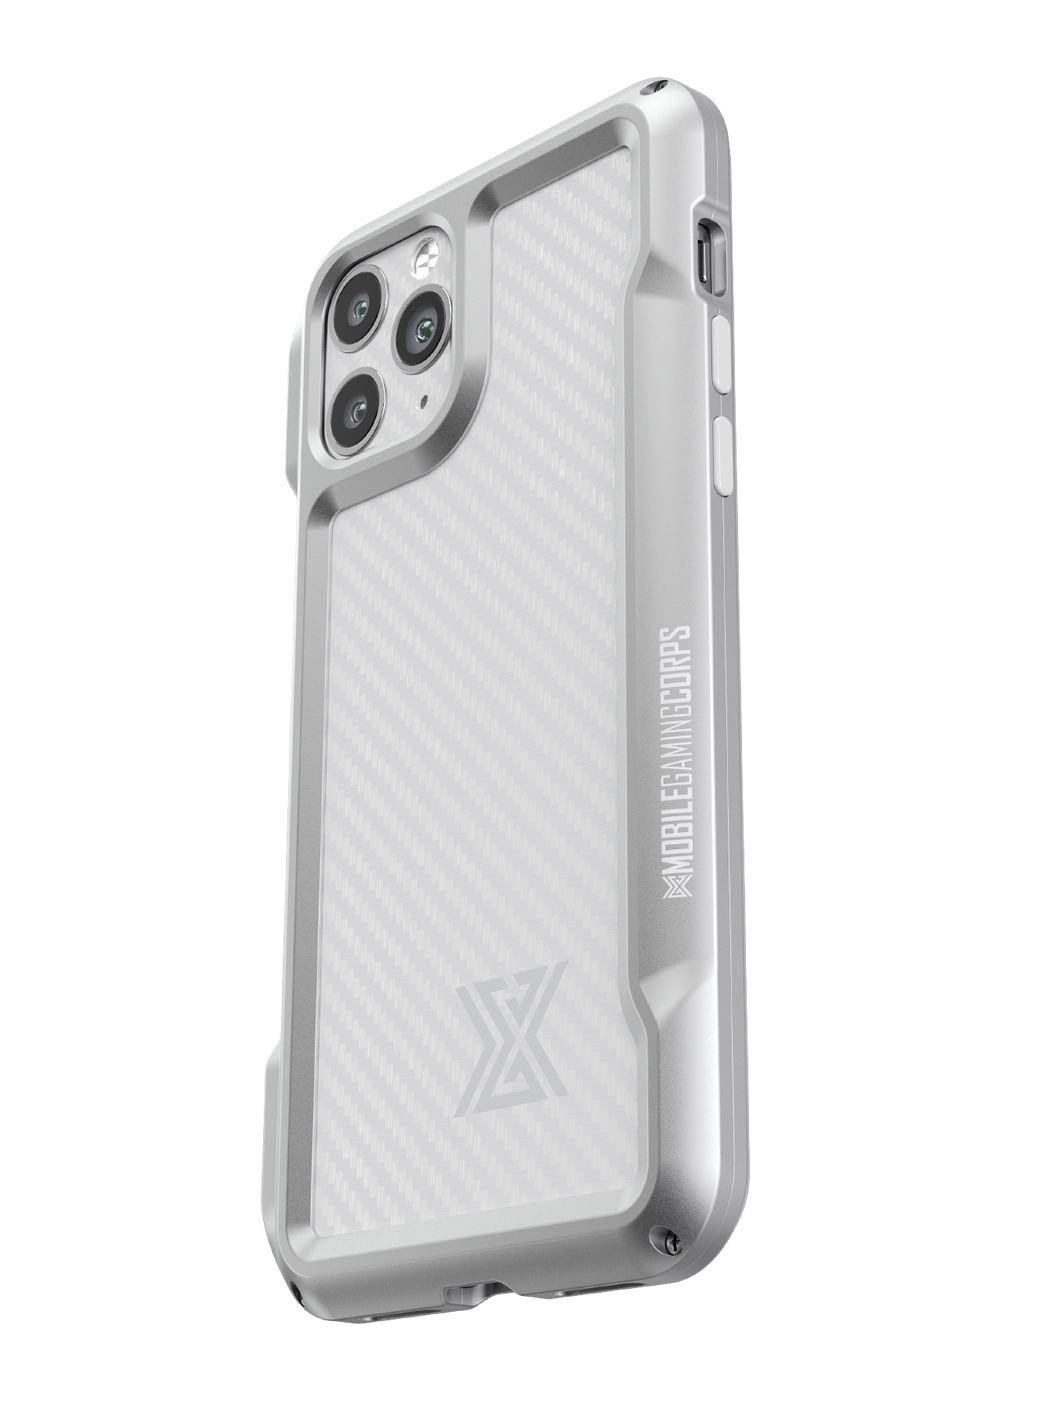 Aura Gaming Case for iPhone 11 Pro - MERCURI